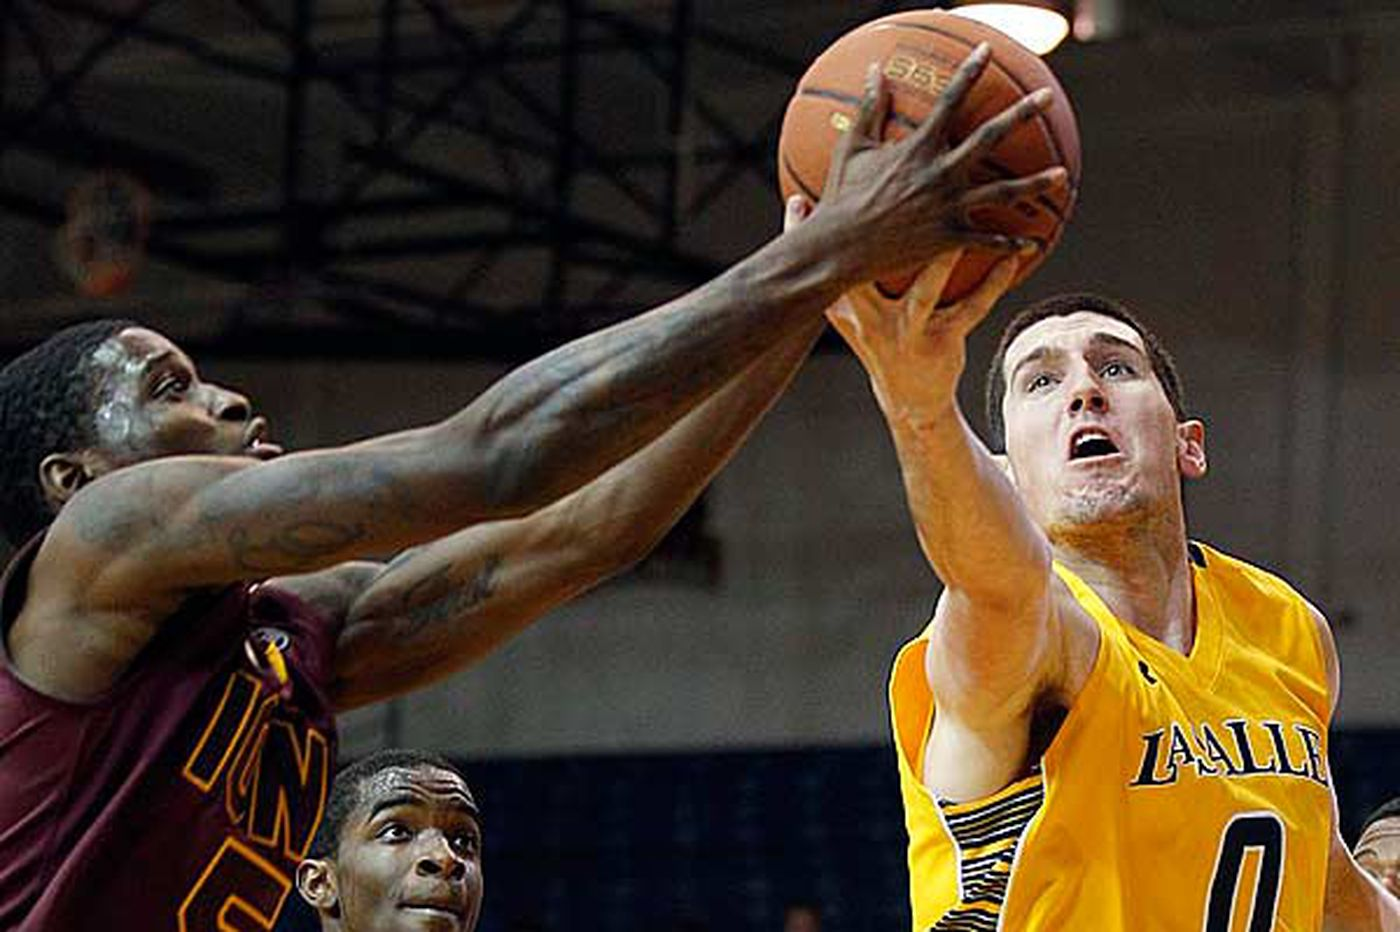 Garland stars as La Salle outpaces fast-paced Iona